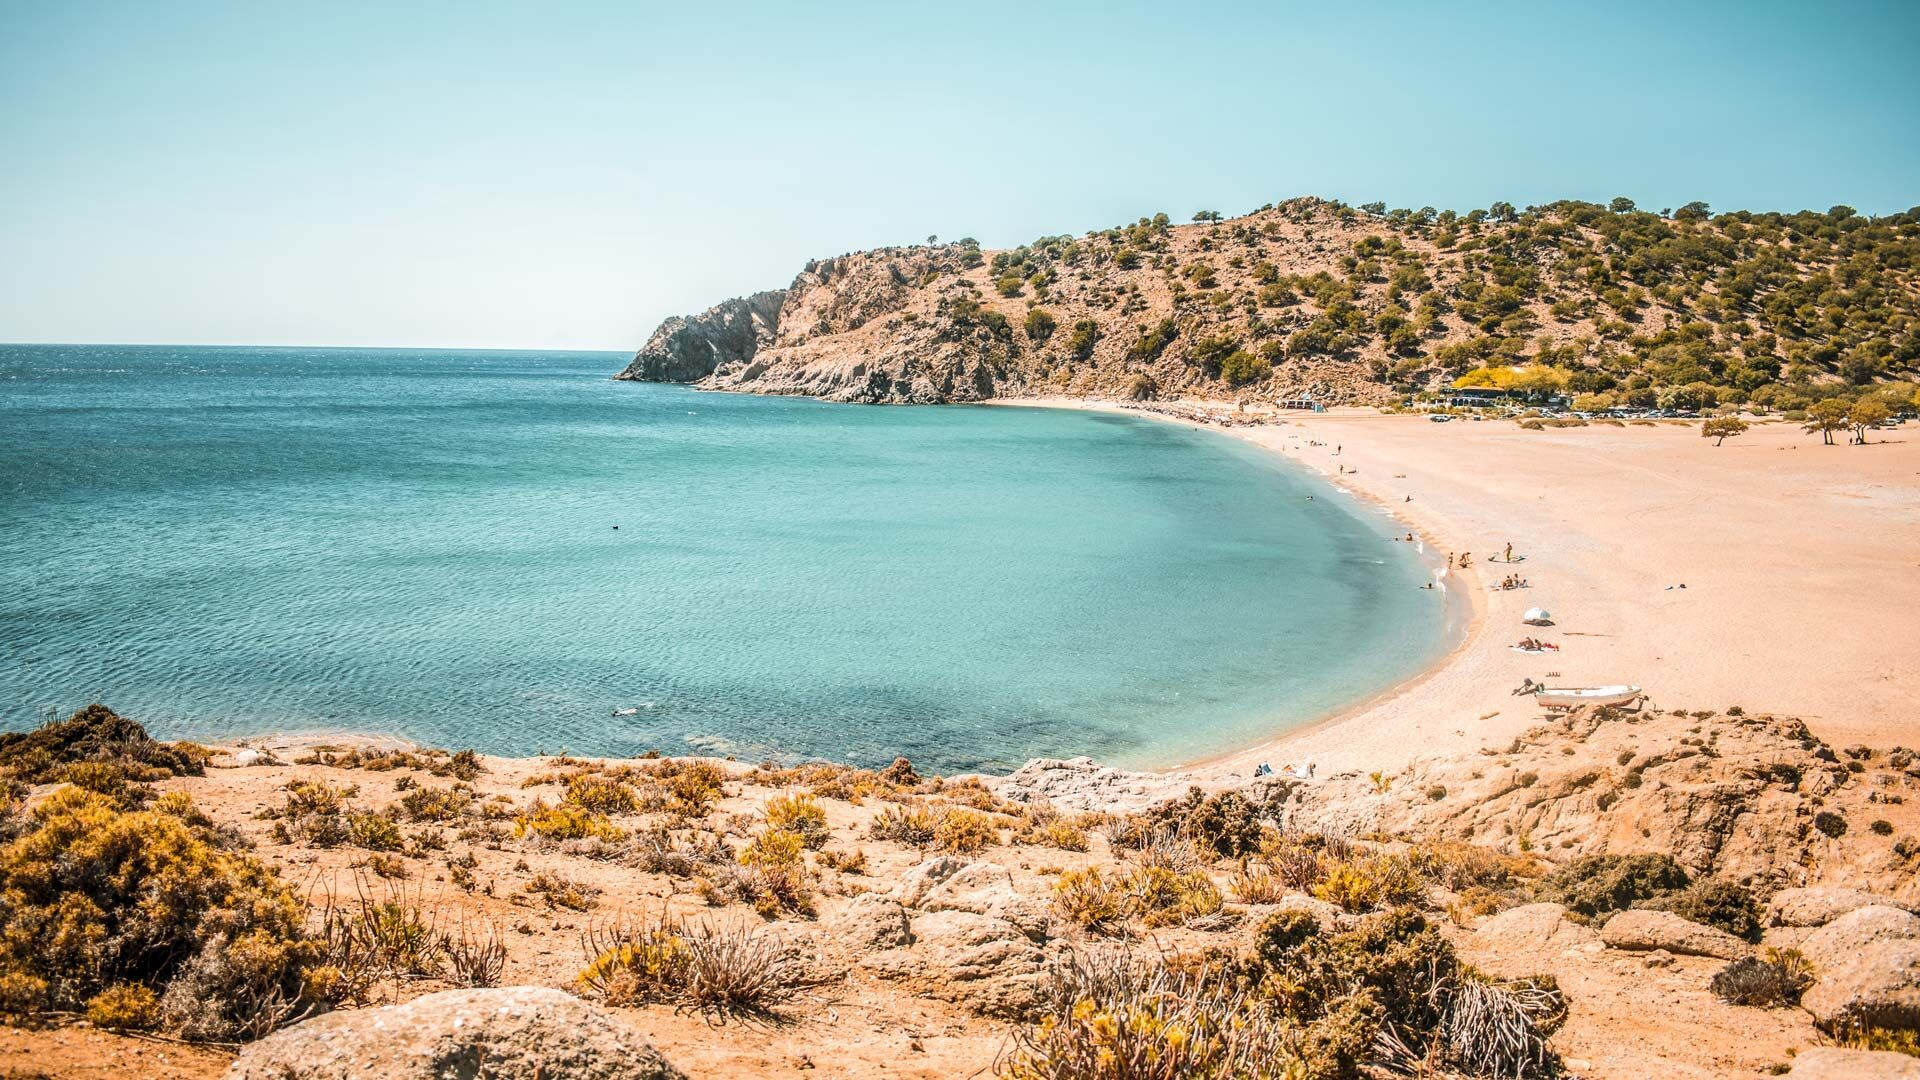 The beach of Pachia Ammos, in the south of the island, is one of the most beautiful sandy beaches in Greece